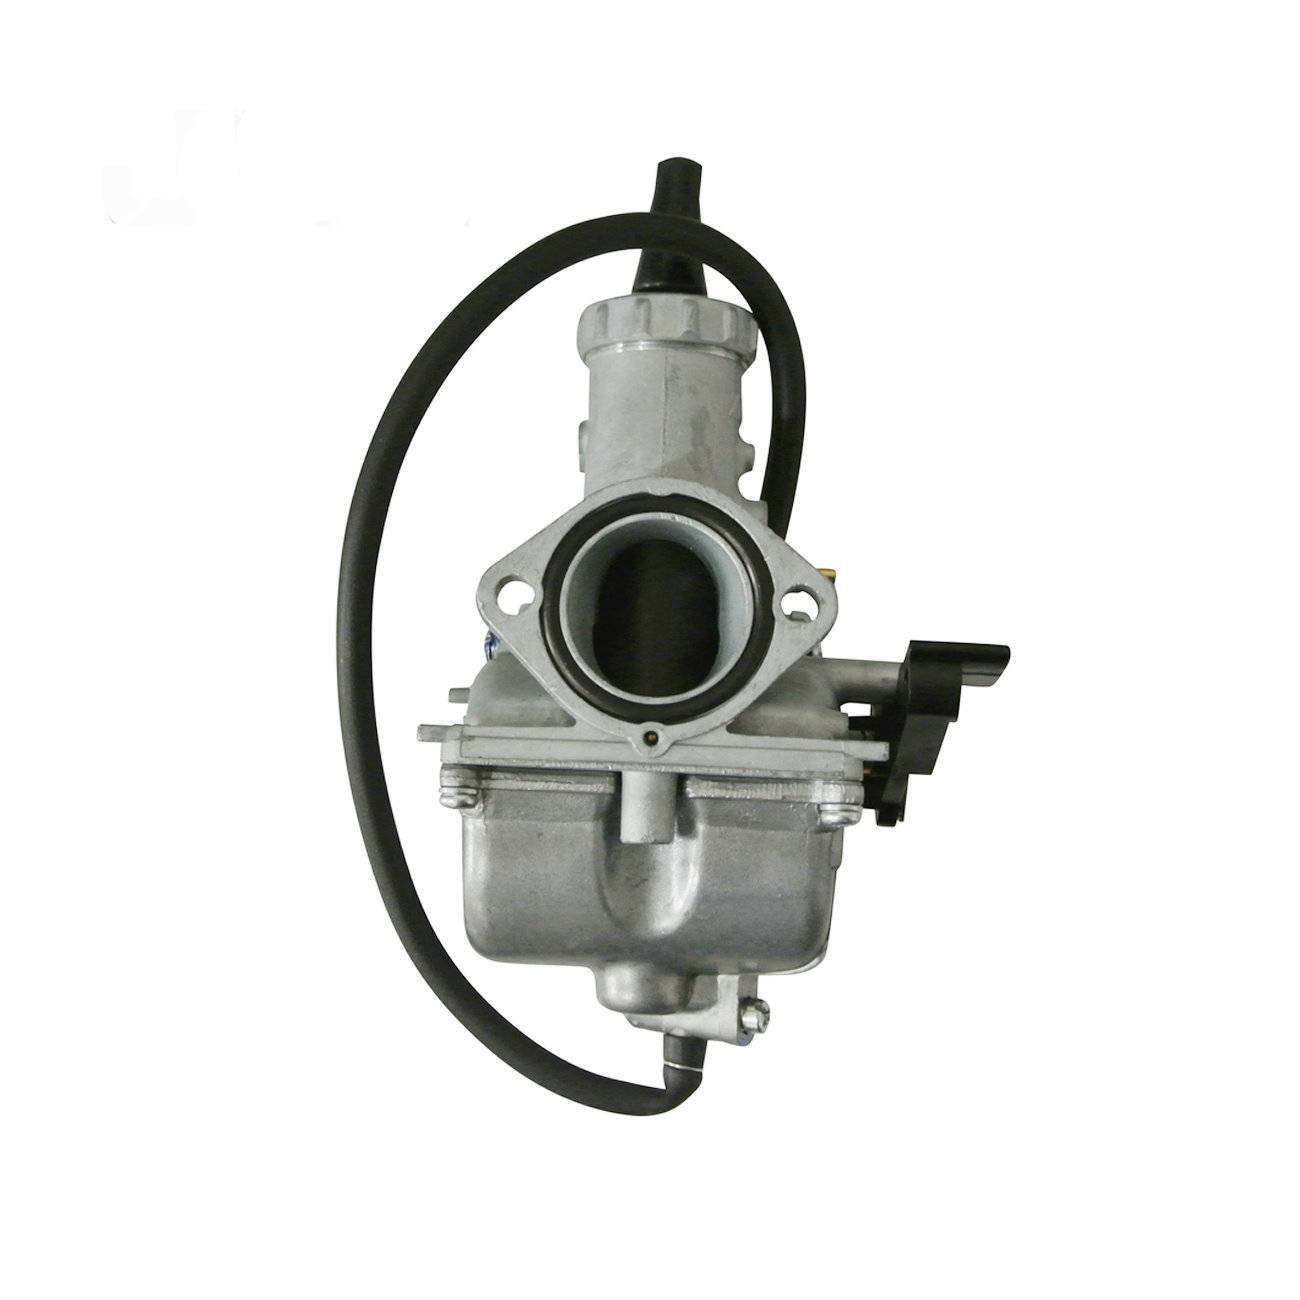 Carburetor Carb For Chinese 150cc 200cc 250cc ATVs, Go Karts and Dirt Bikes